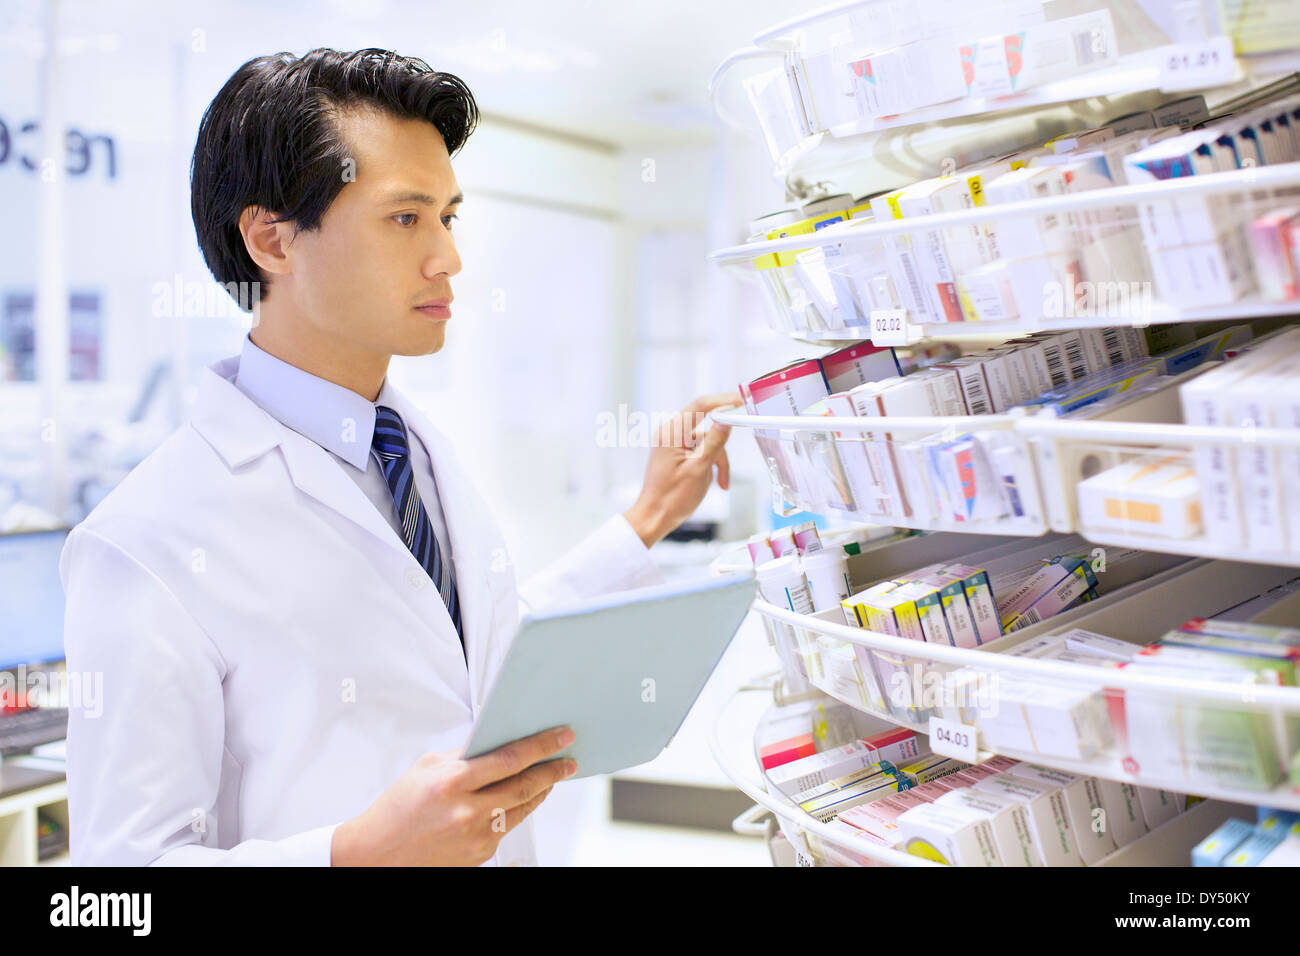 Male pharmacist stock taking in pharmacy - Stock Image